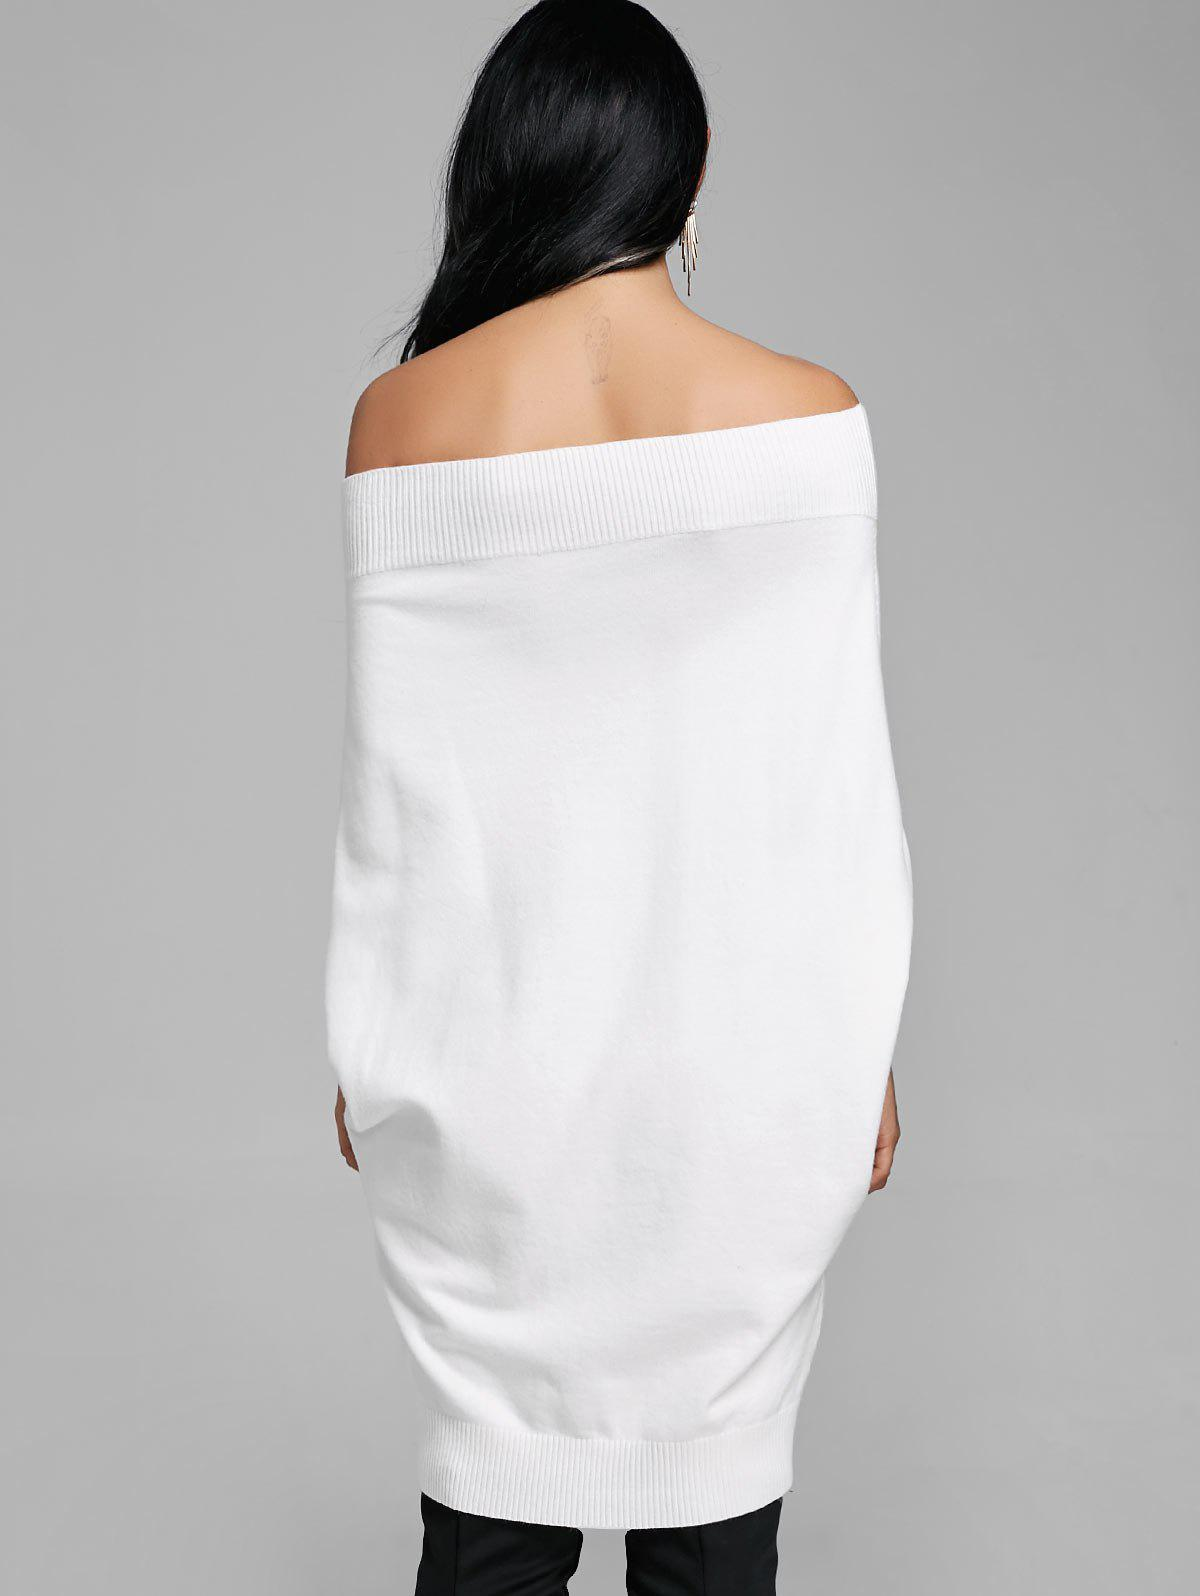 Kintted Off The Shoulder Batwing Sleeve Dress - WHITE M